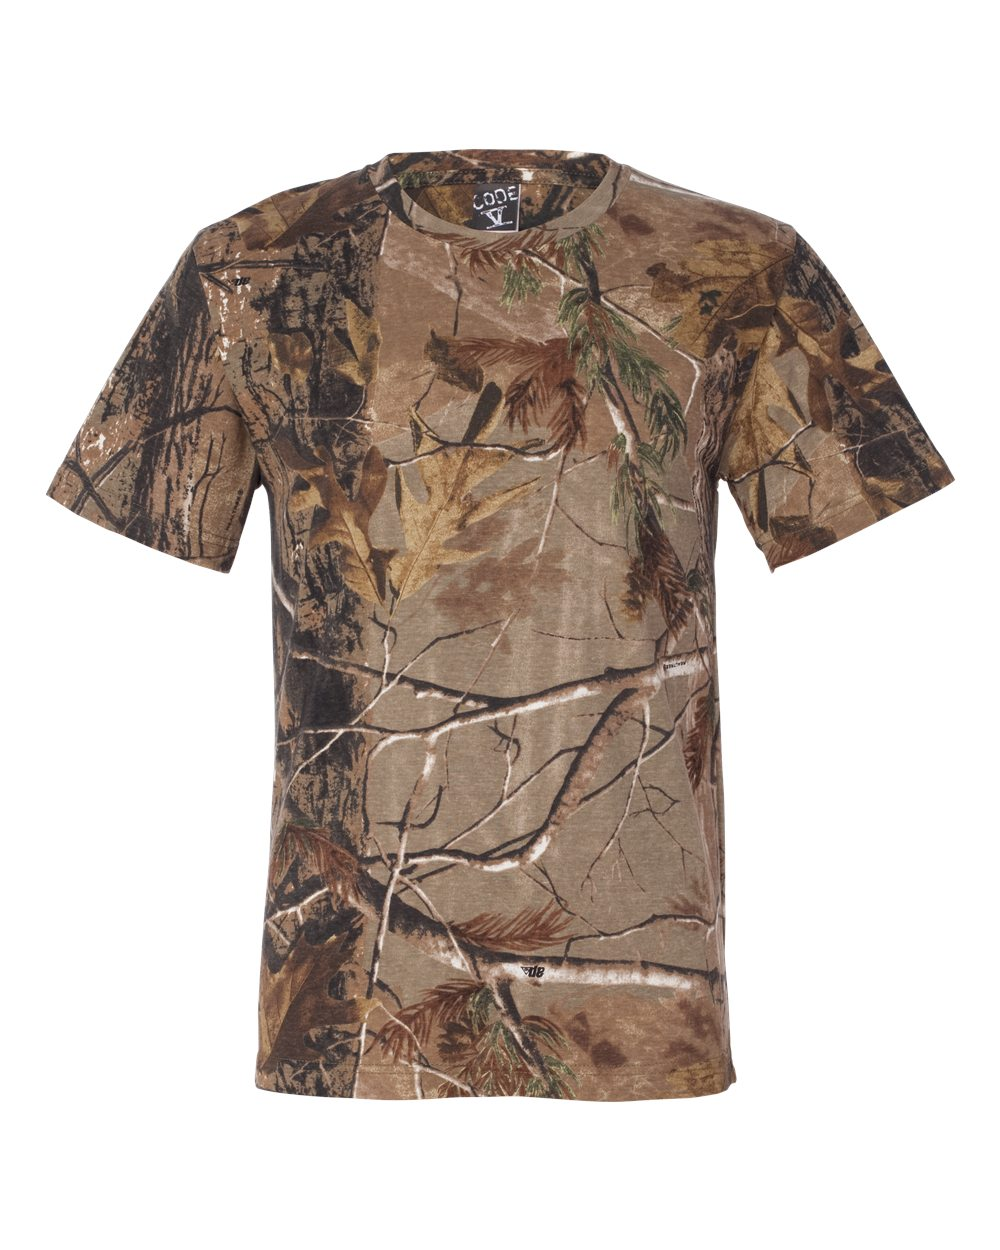 Code-Five-Mens-Adult-Realtree-Camo-Tee-T-Shirt-Short-Sleeve-3980-up-to-4XL thumbnail 6